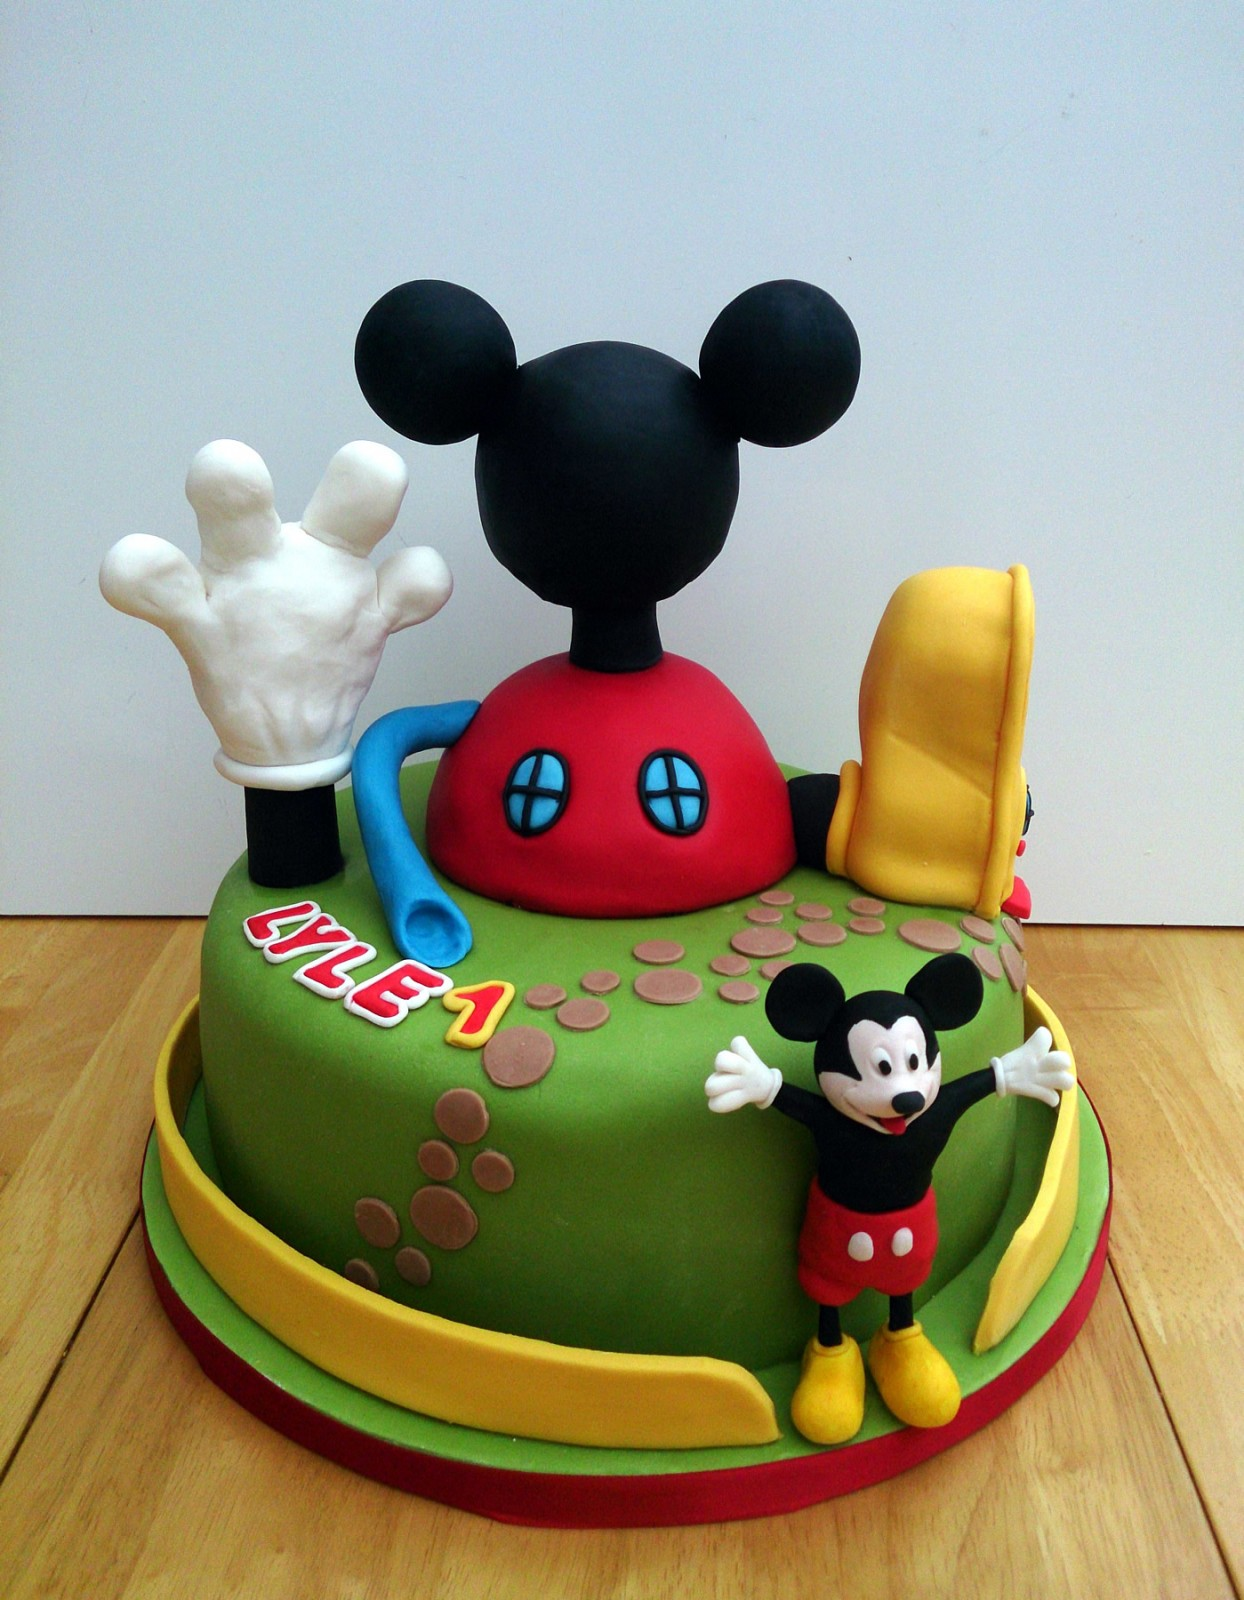 Images Of Mickey Mouse Clubhouse Birthday Cakes : Mickey Mouse Clubhouse Cake   Susie s Cakes